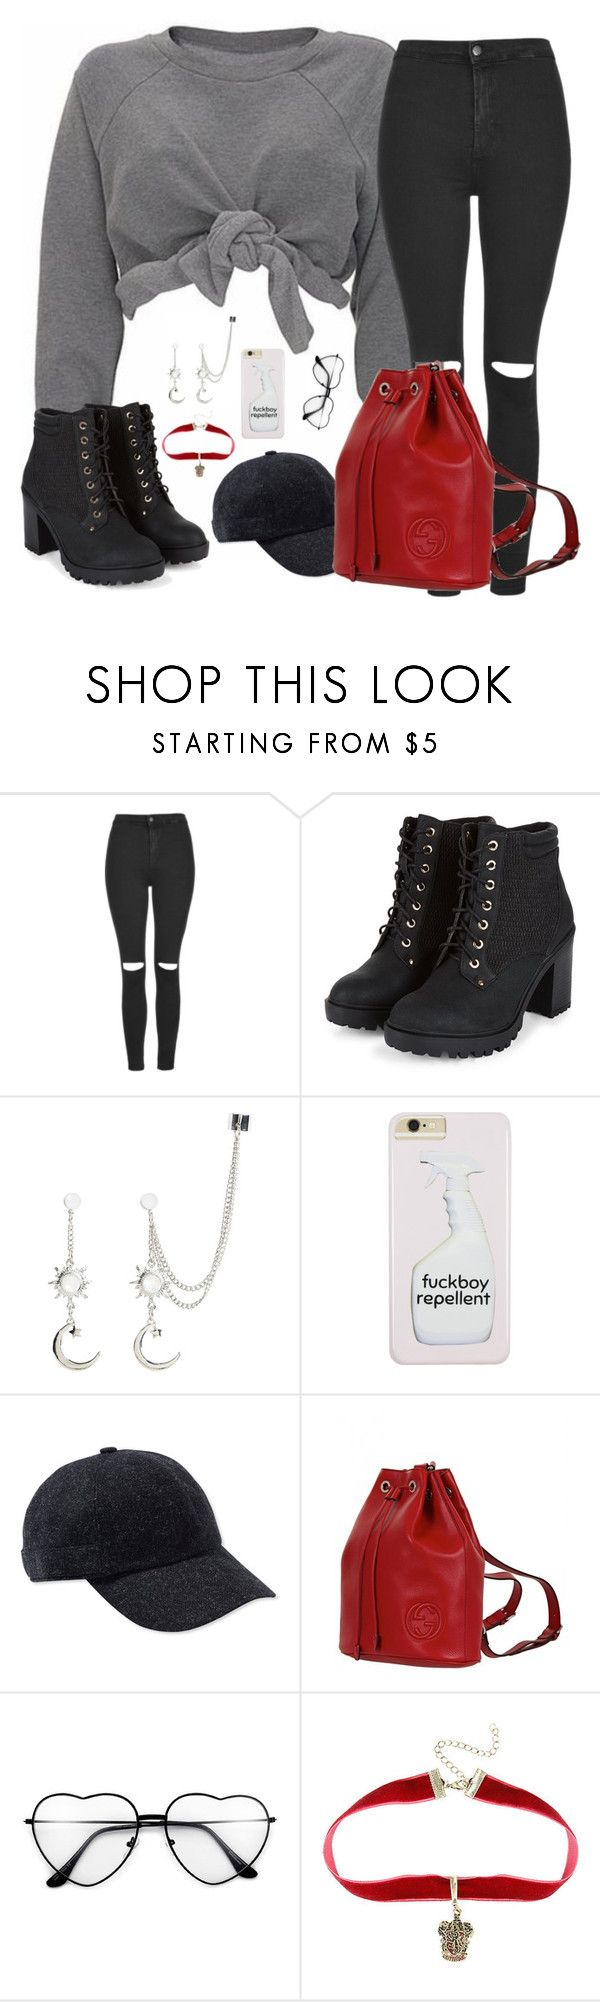 """""""International women's day"""" by lame-spacemilk ❤ liked on Polyvore featuring Ashish, Topshop, Hat Attack, Gucci and Warner Bros."""